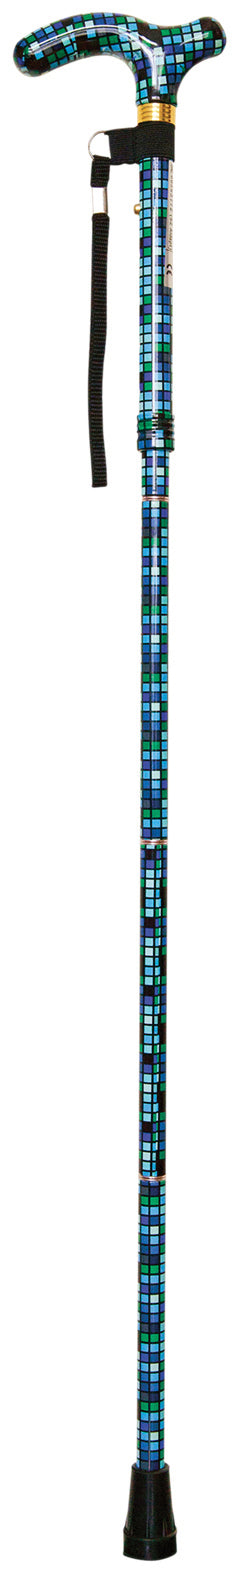 Tile walking stick with patterned handle, black ferrule and loop